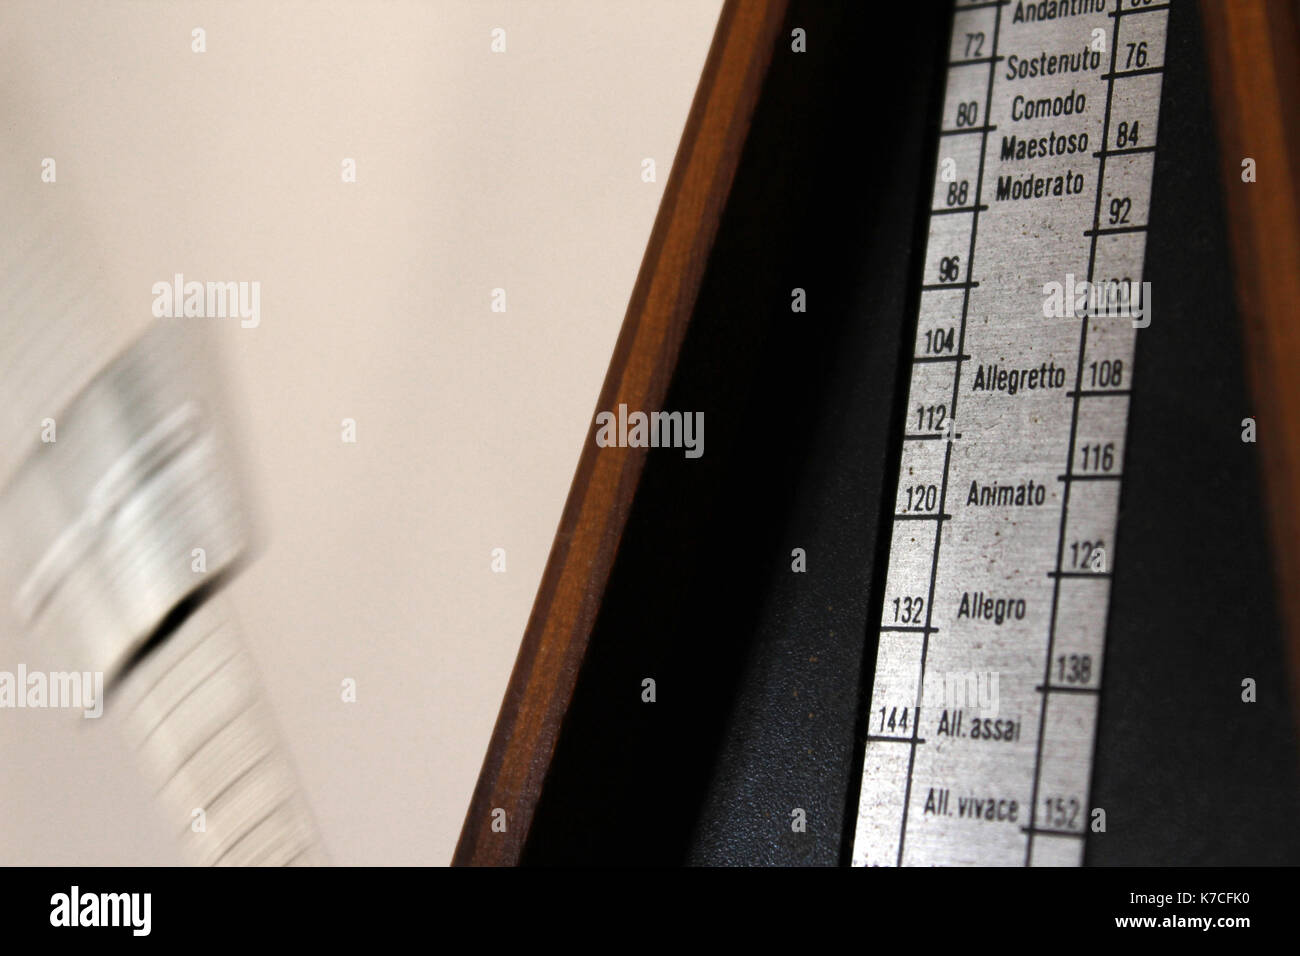 Vintage metronome close-up - Stock Image